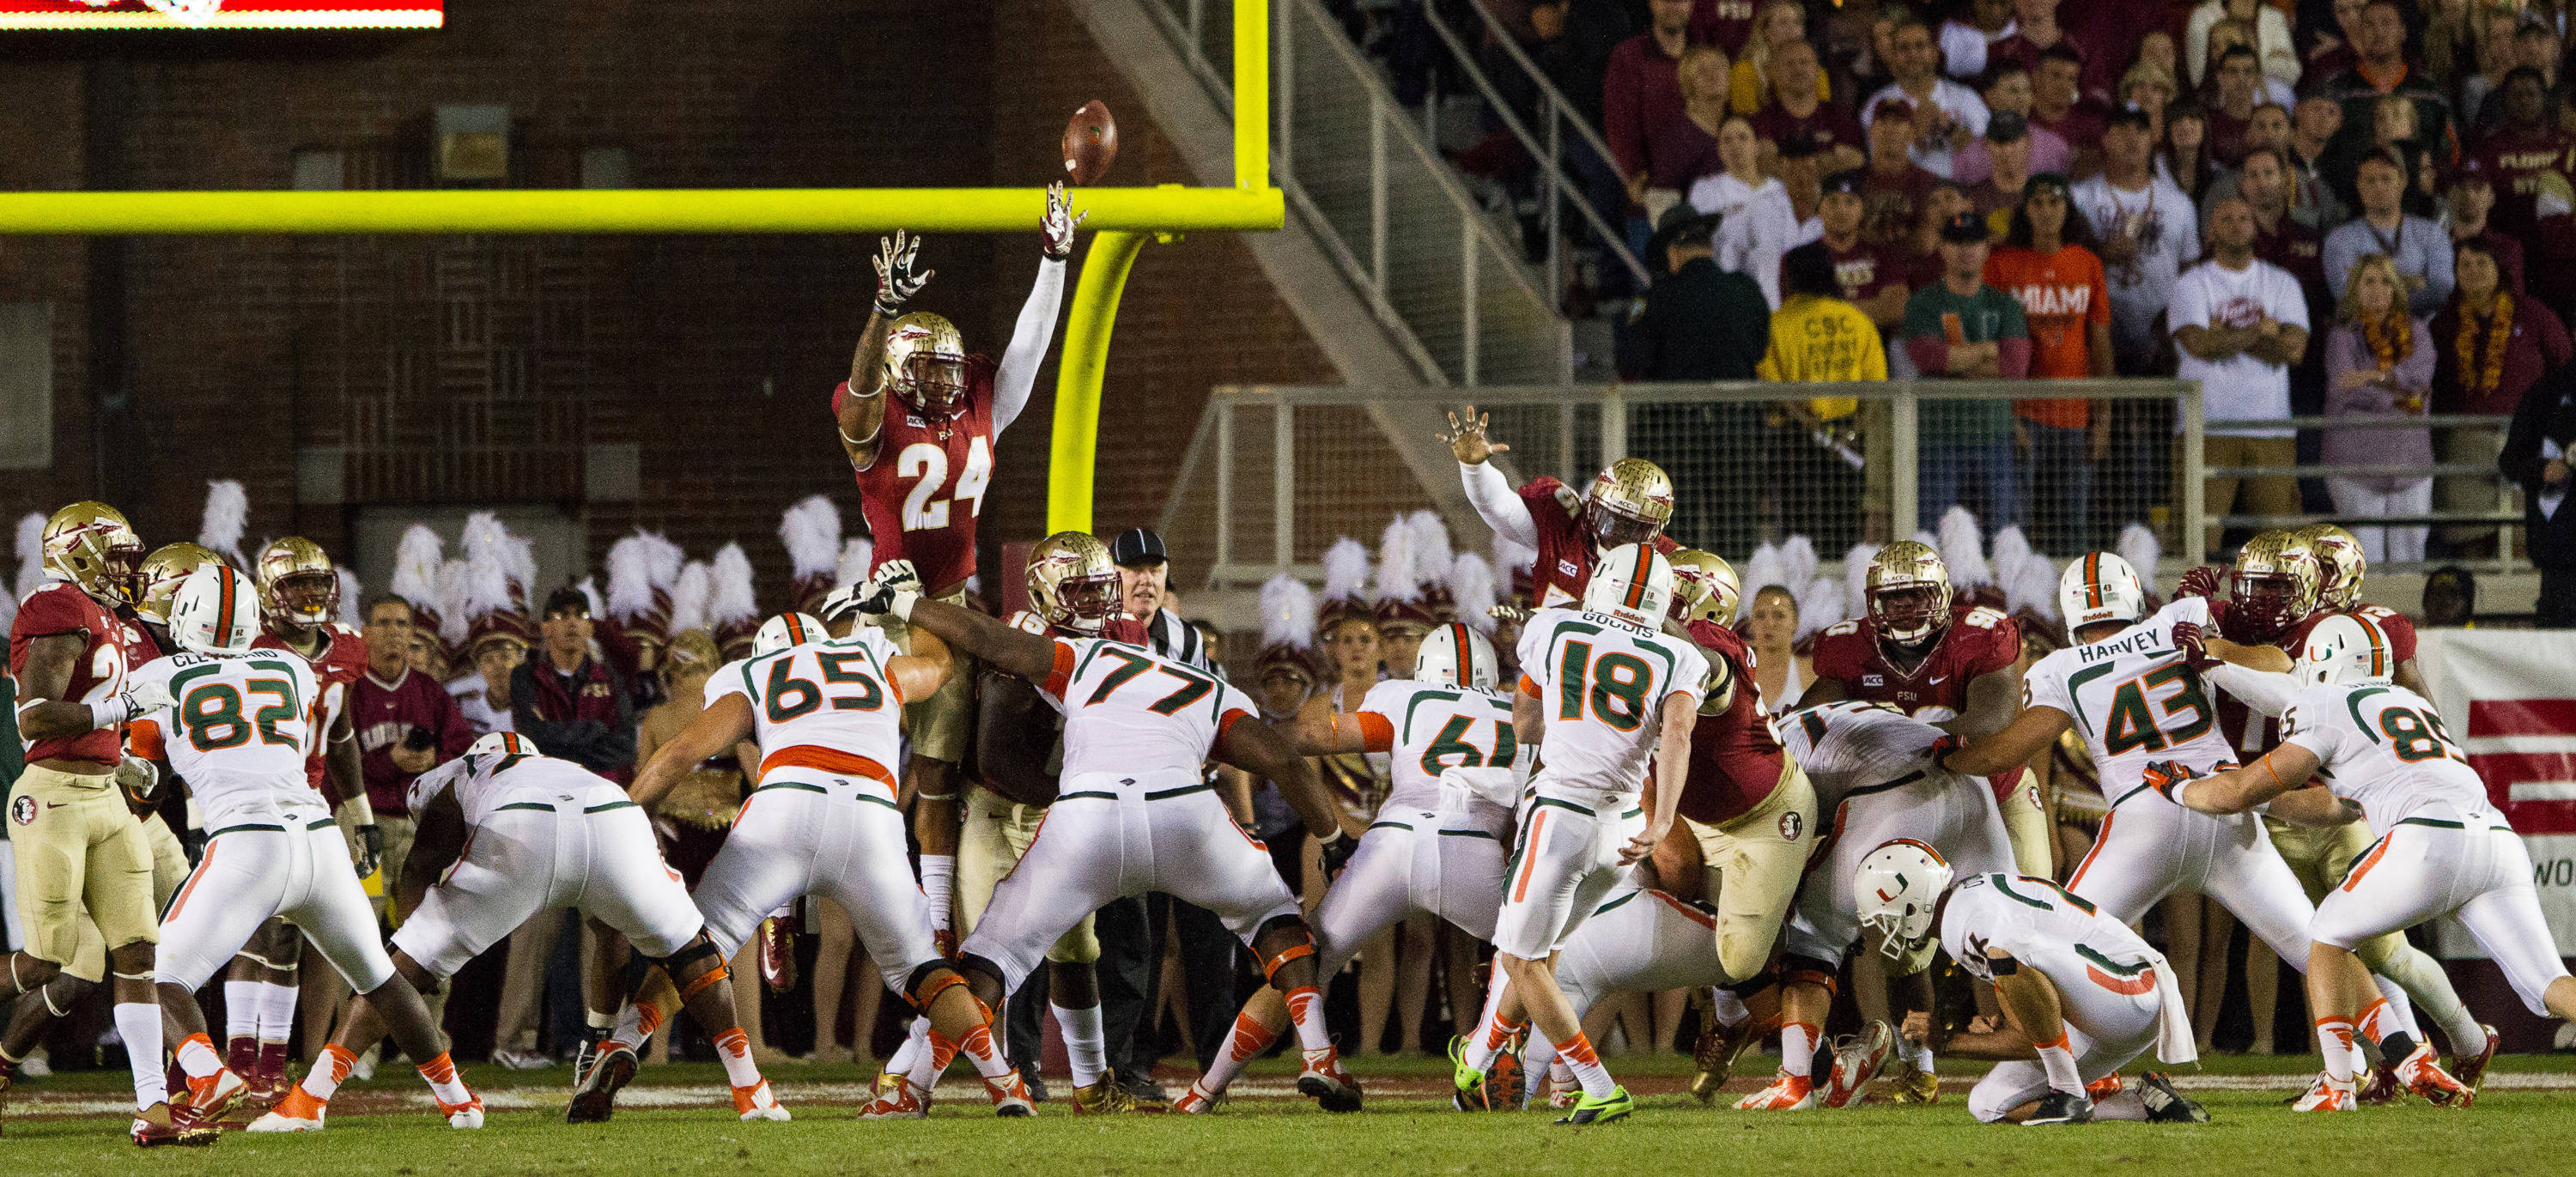 Terrance Smith (24) attempts to block an extra point during FSU football's 41-14 win over Miami on Saturday, November 2, 2013 in Tallahassee, Fla. Photo by Michael Schwarz.